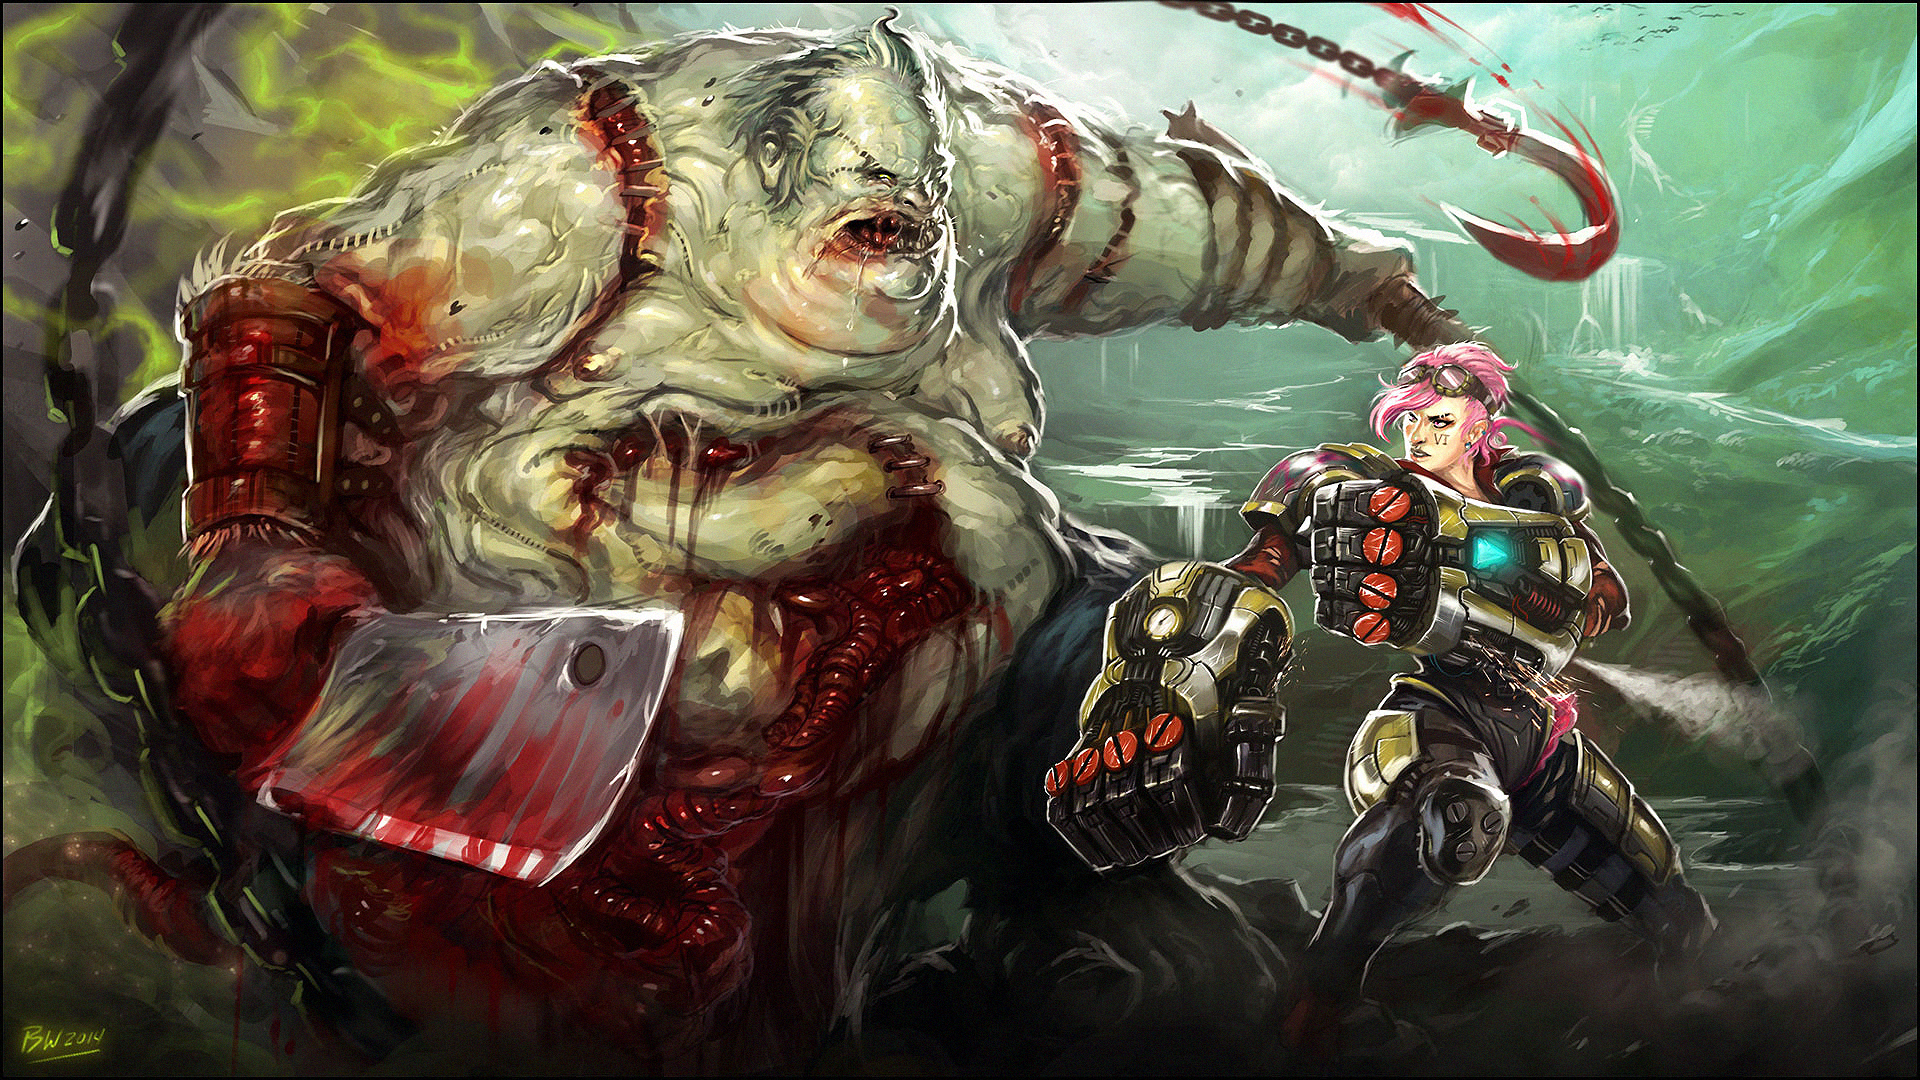 Pudge vs. Vi - Dota 2 vs. League of Legends by Bradwhitlam